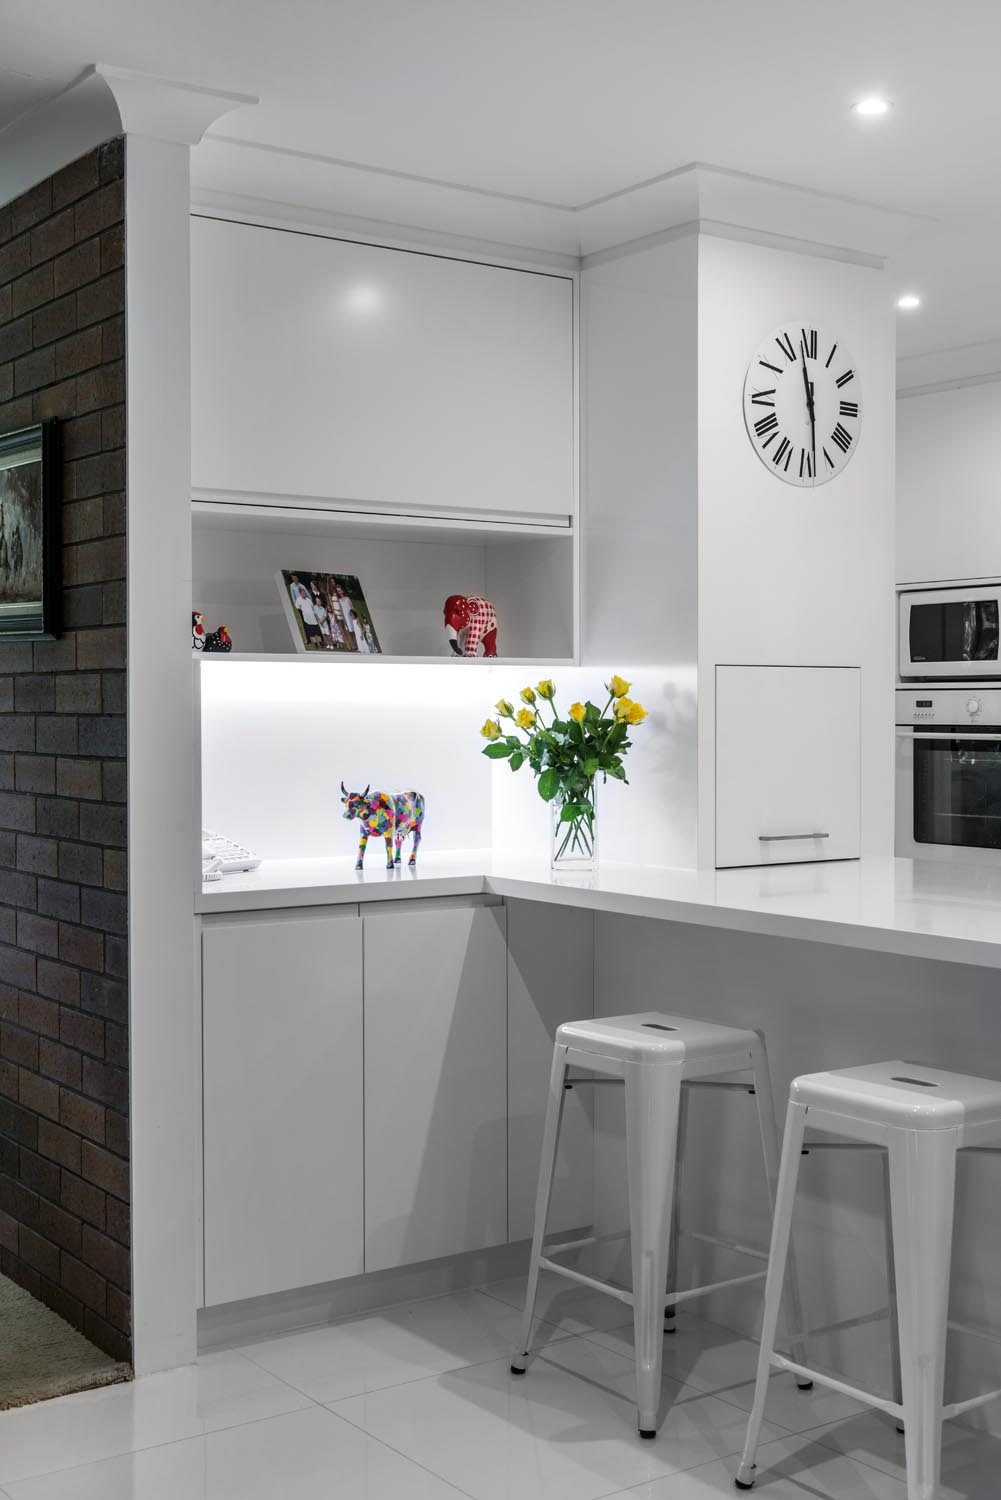 White on white: Minimalist kitchen design